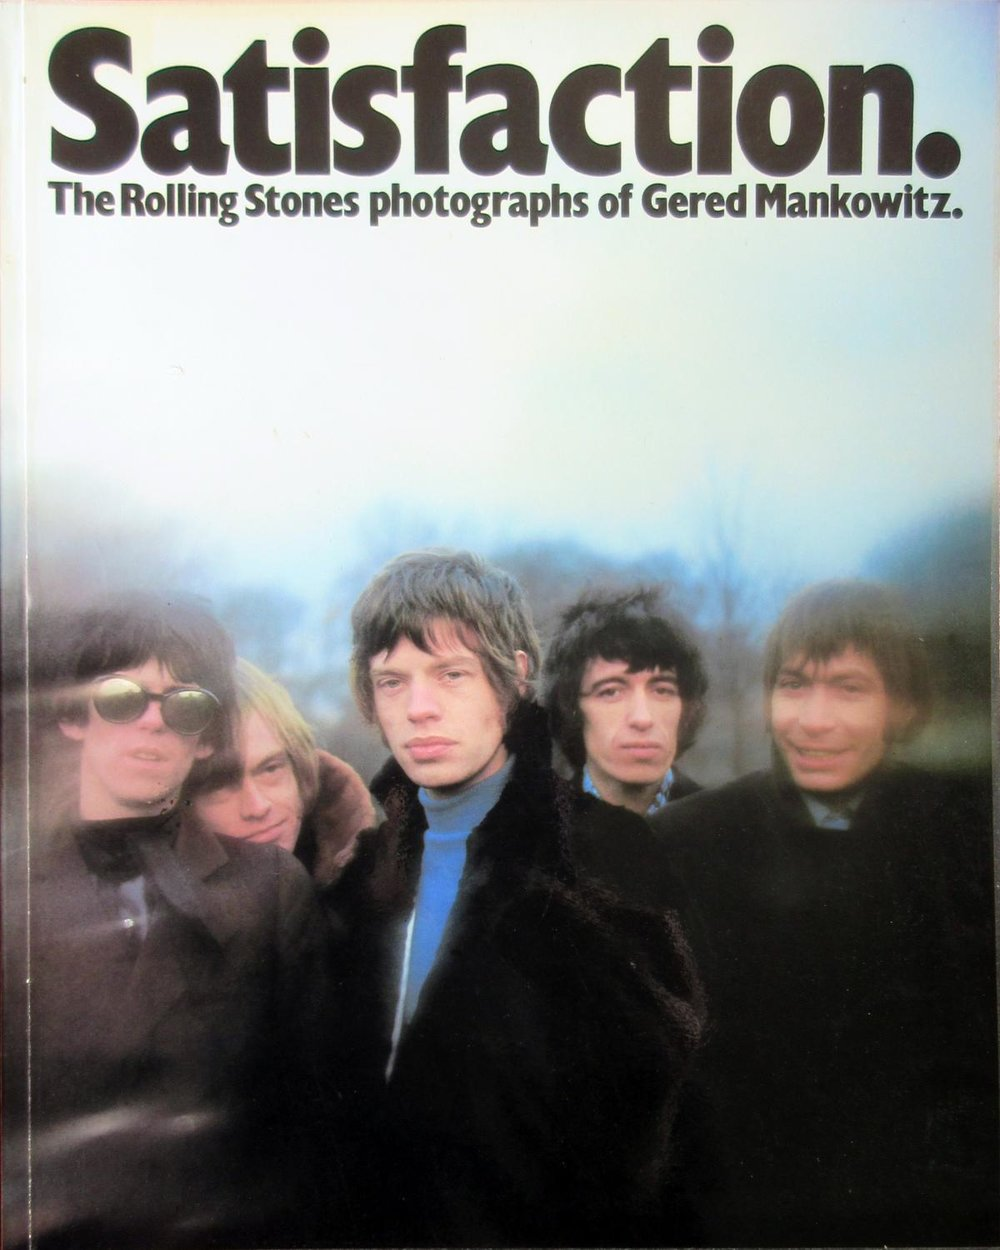 Satisfaction: The Rolling Stones - by Gered Mankowitz